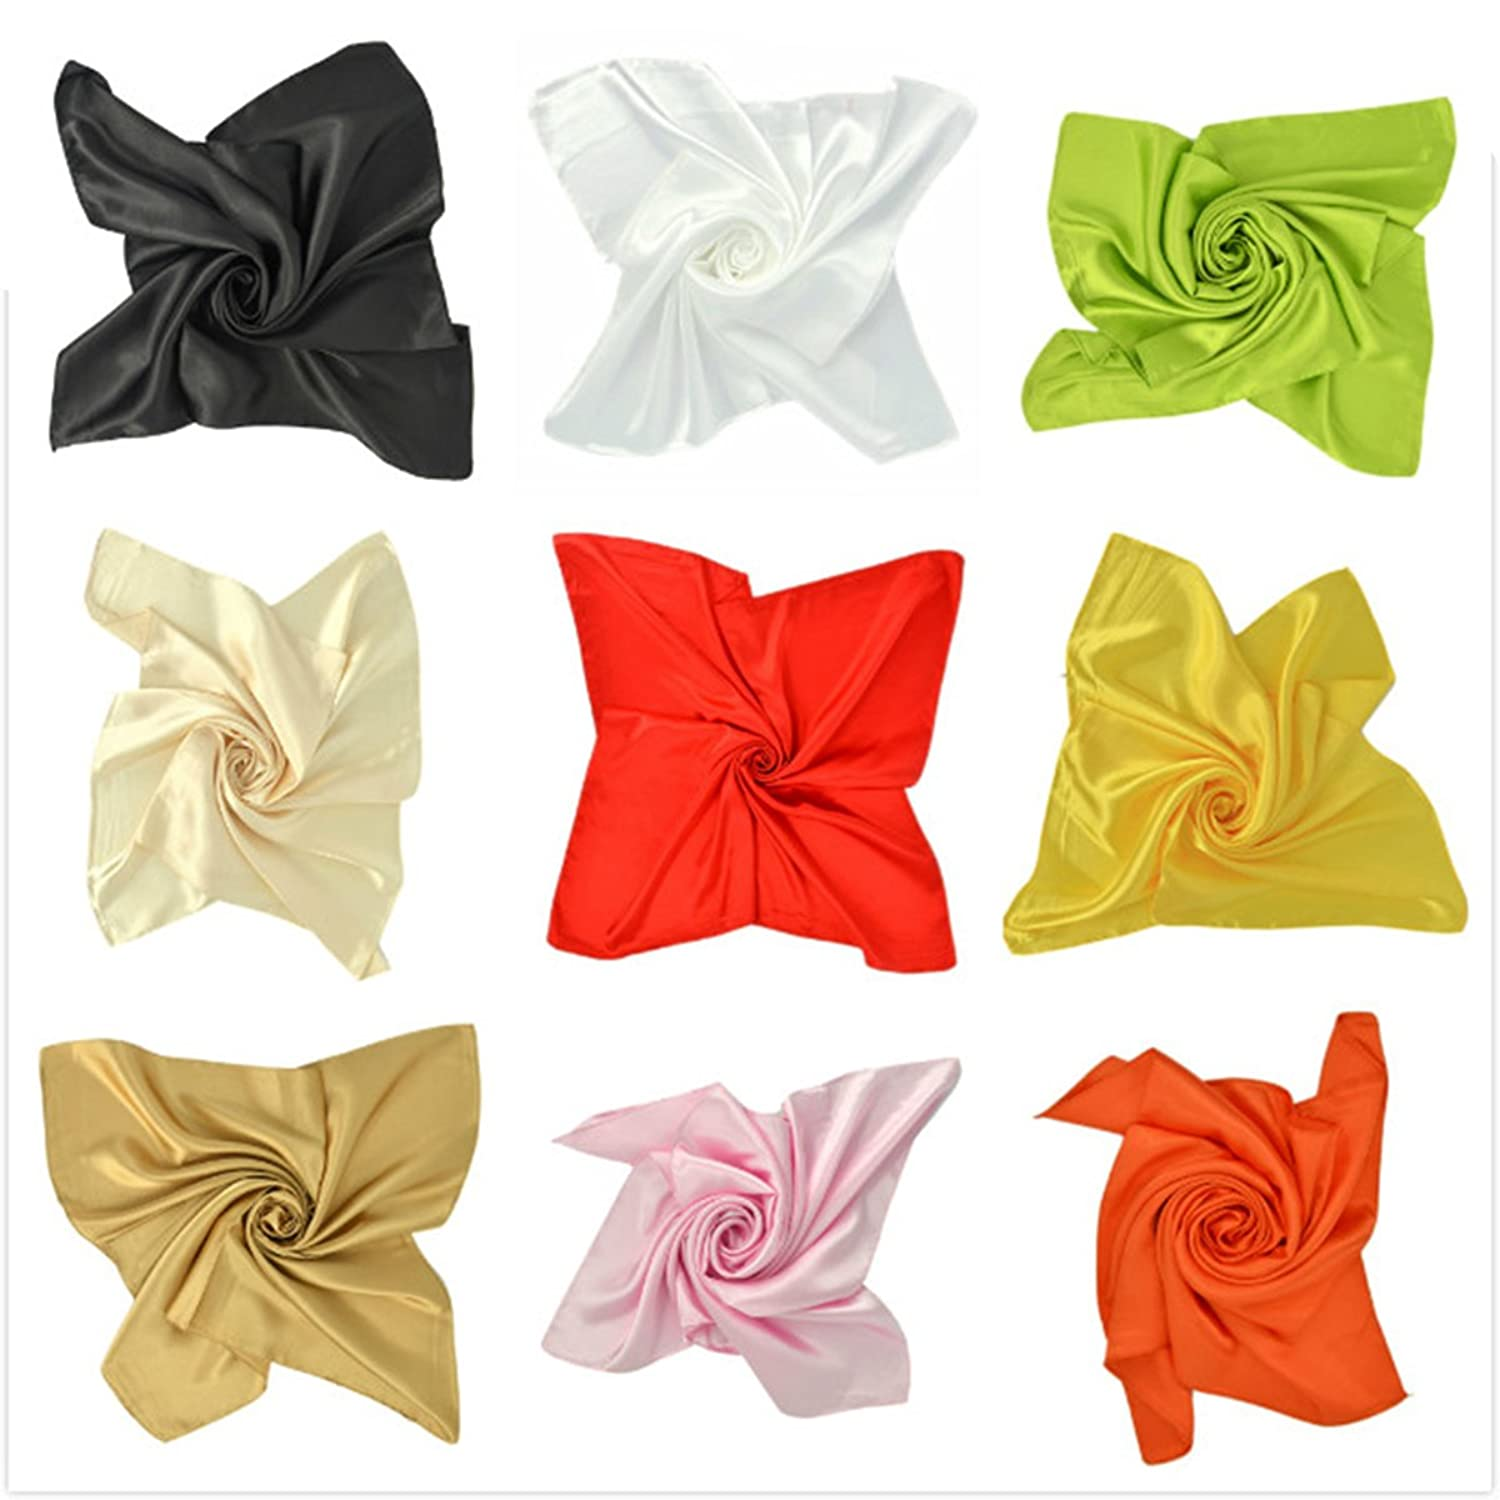 Women's and Men's Four Seasons Apparel Accessories Silk Foulards Square Scarf